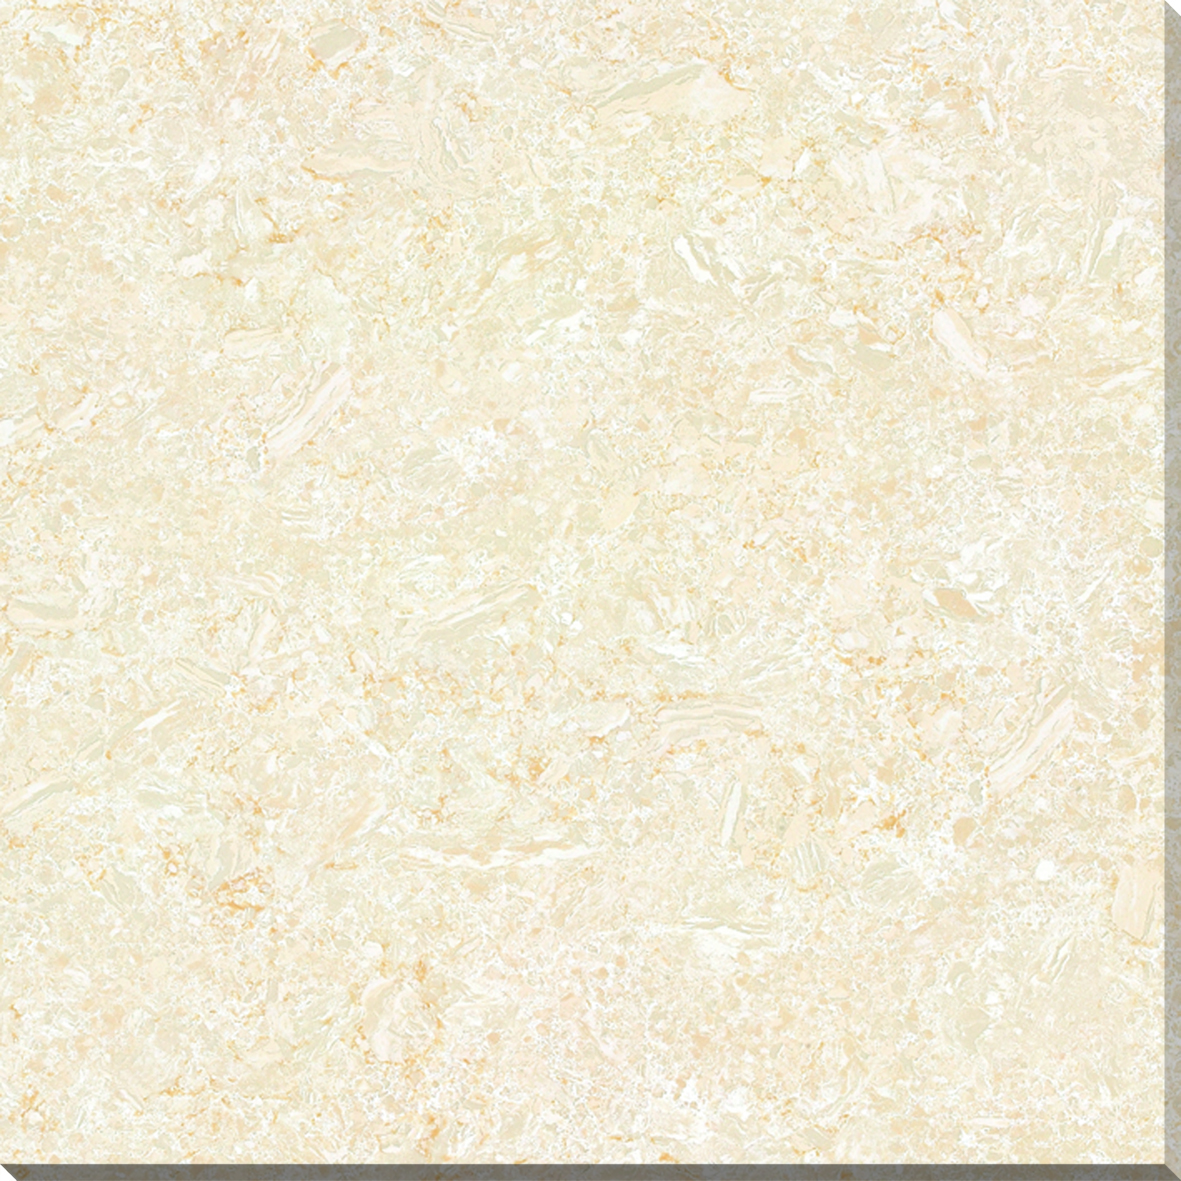 HIGH GLOSSY POLISHED PORCELAINT TILE TULIPS STONE NANO SERIE